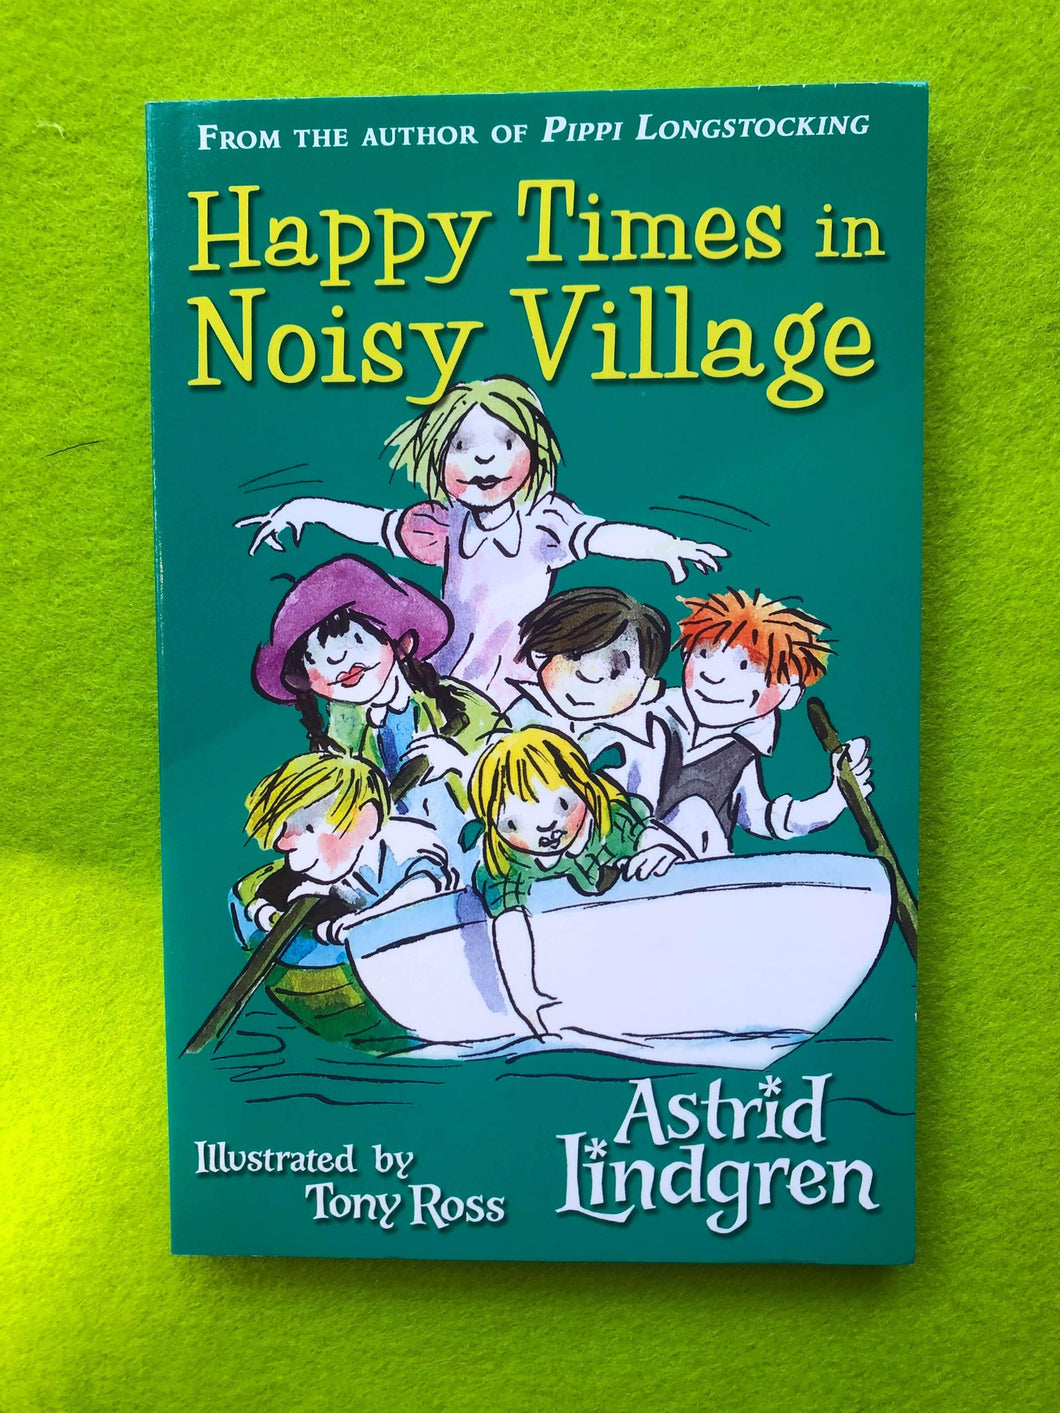 Astrid Lindgren - Happy Times in Noisy Village